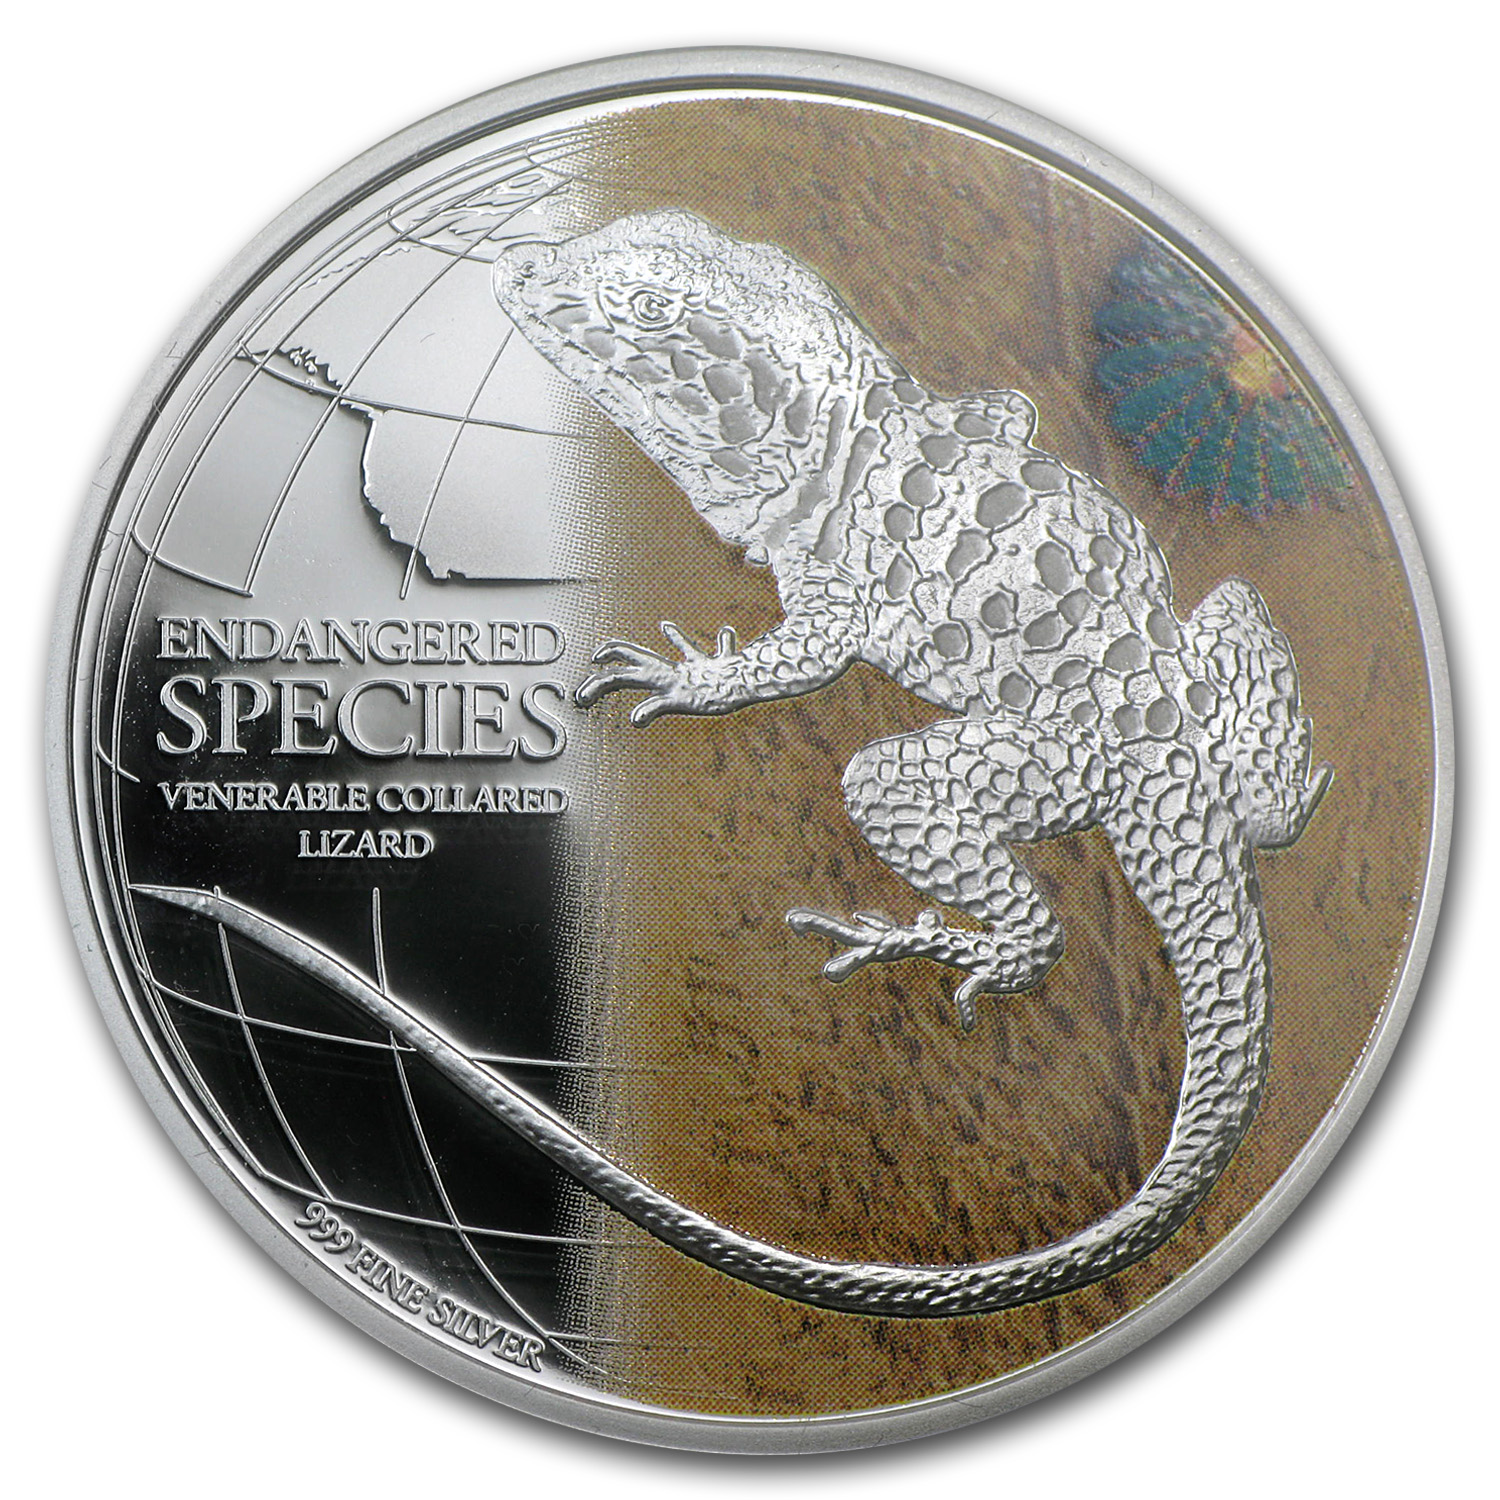 2013 1 oz Silver Endangered Species Venerable Collared Lizard